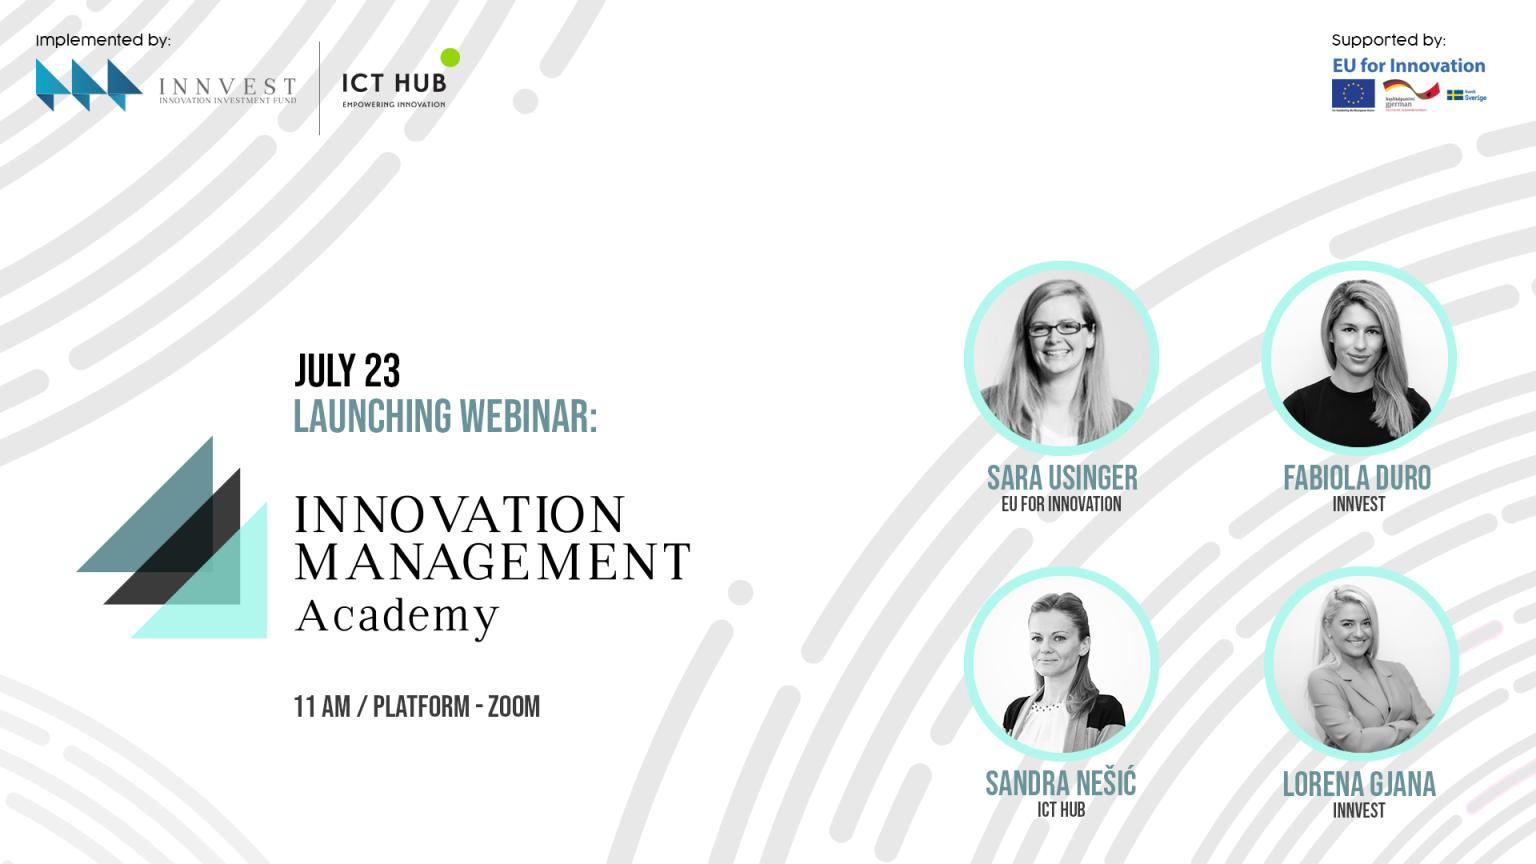 Launching Webinar : Innovation Management Academy, Innvestfund, Innovation Investment Fund